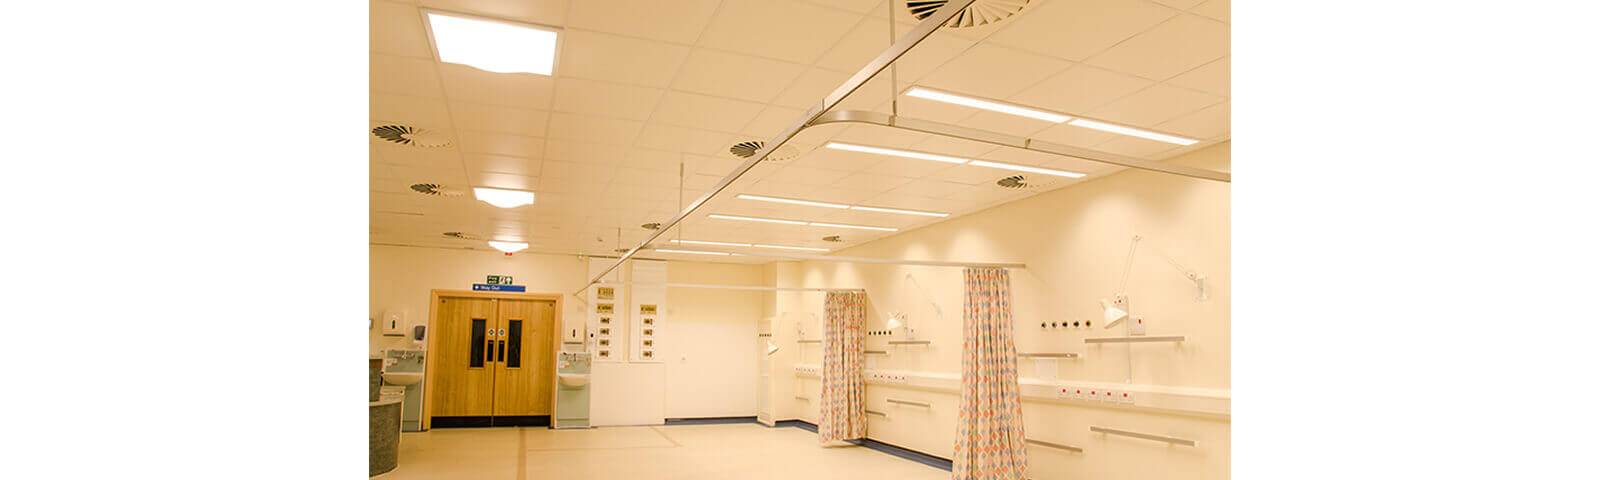 Barnsley Hospital Project Completed gallery image